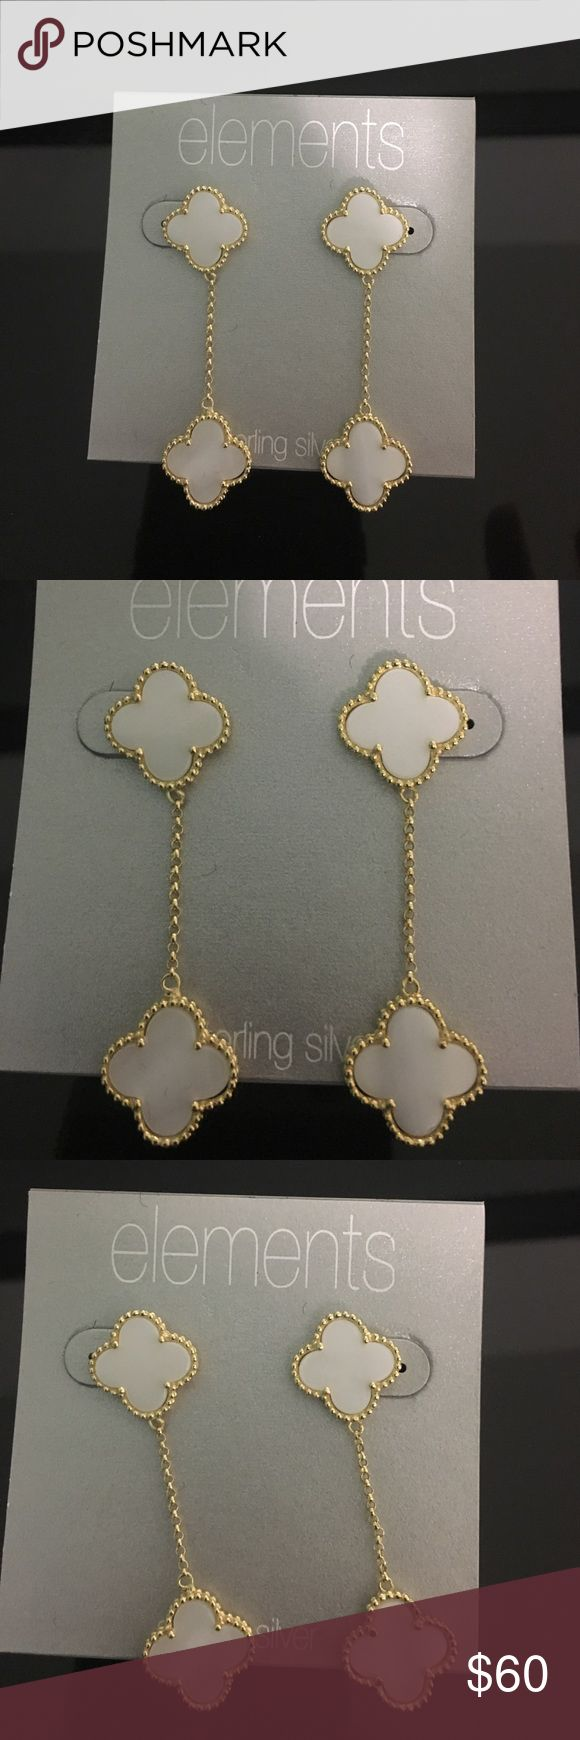 Sterling silver designer look Gorgeous pair of sterling silver gold plated earrings. Brand new never been worn. Looks like the van clef collection. Please note these are not van cleef & Arpel earrings. van cleef & Arpels Jewelry Earrings